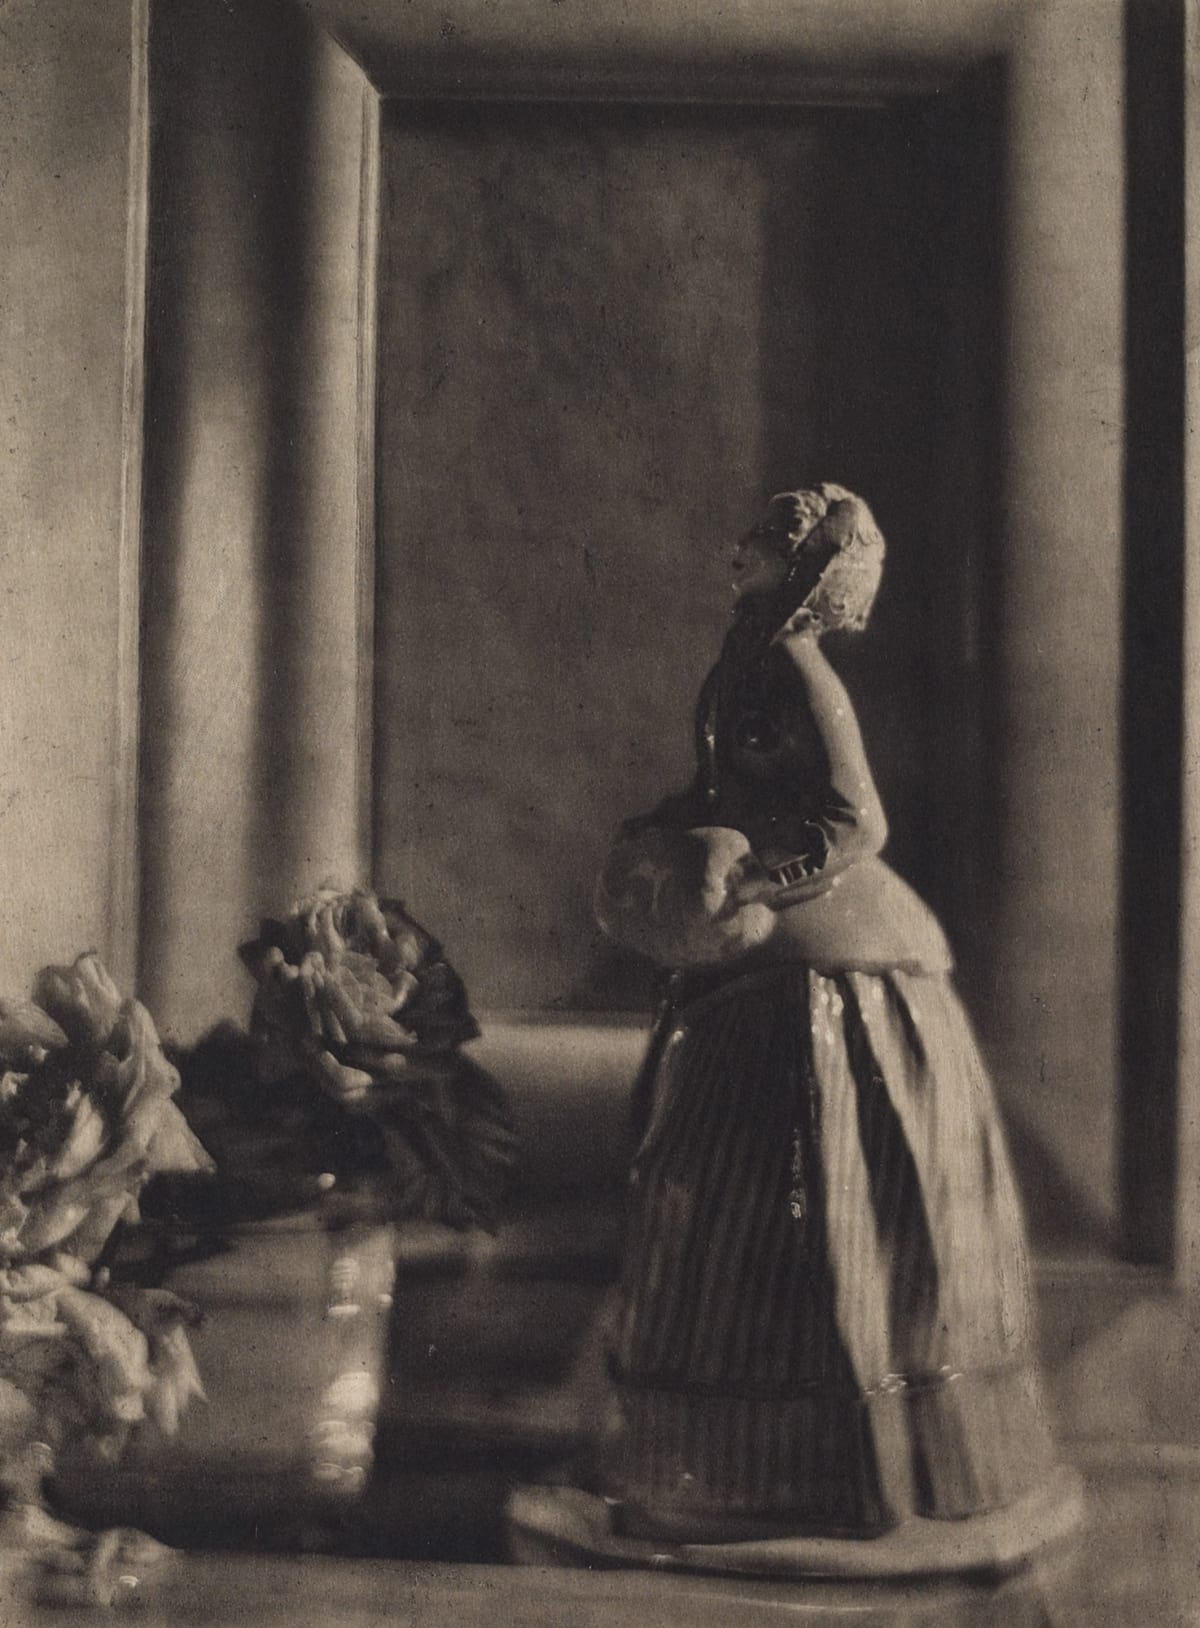 The Nymphenburg Figure, Baron A. de Meyer, Photogravure, 1912